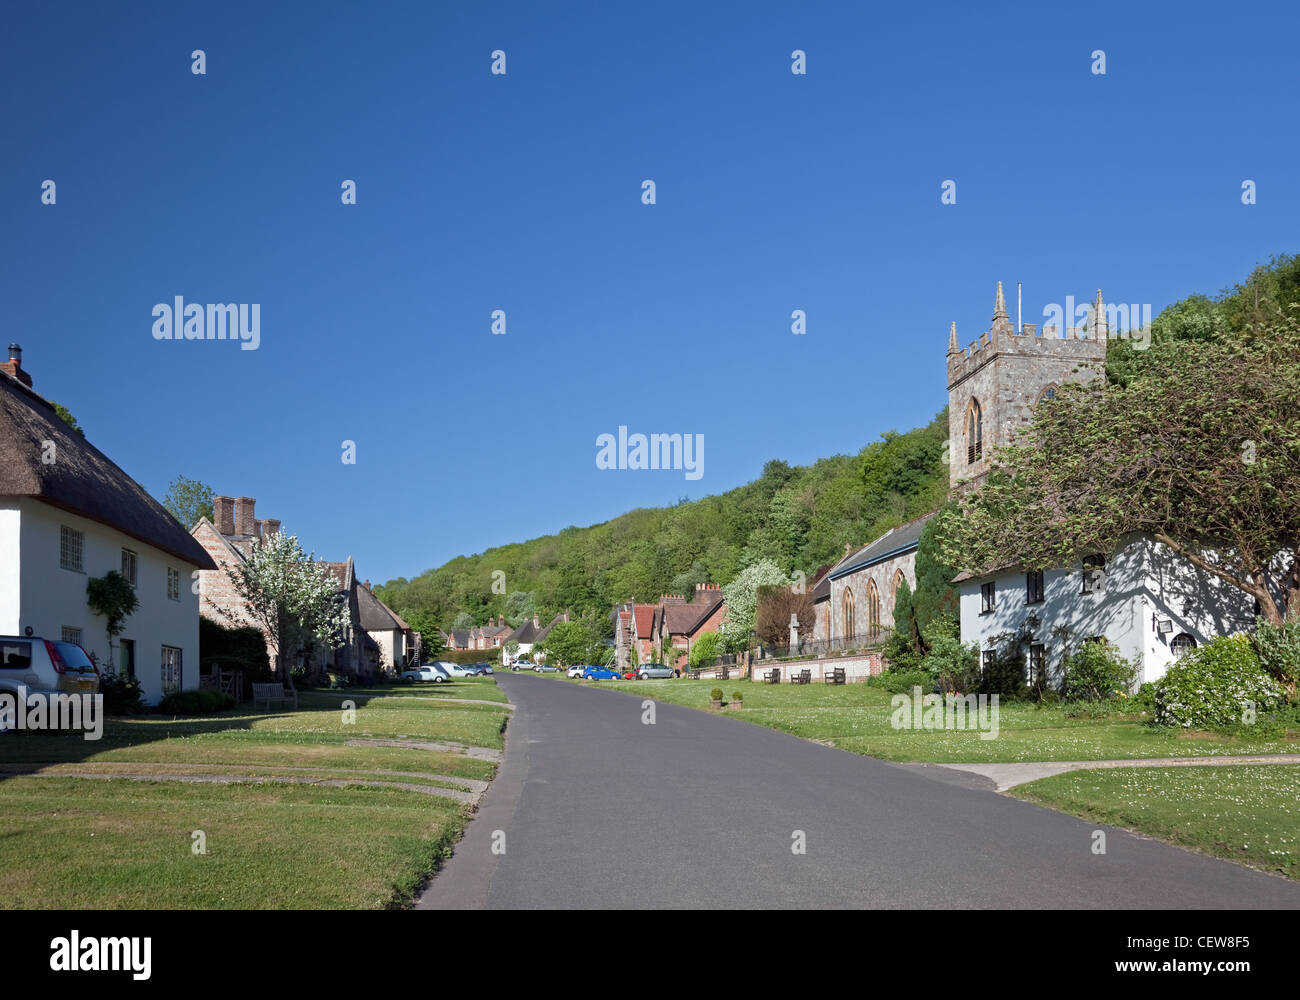 The Street with Thatched Cottages and St. James' Church, Milton Abbas, Dorset, England - Stock Image